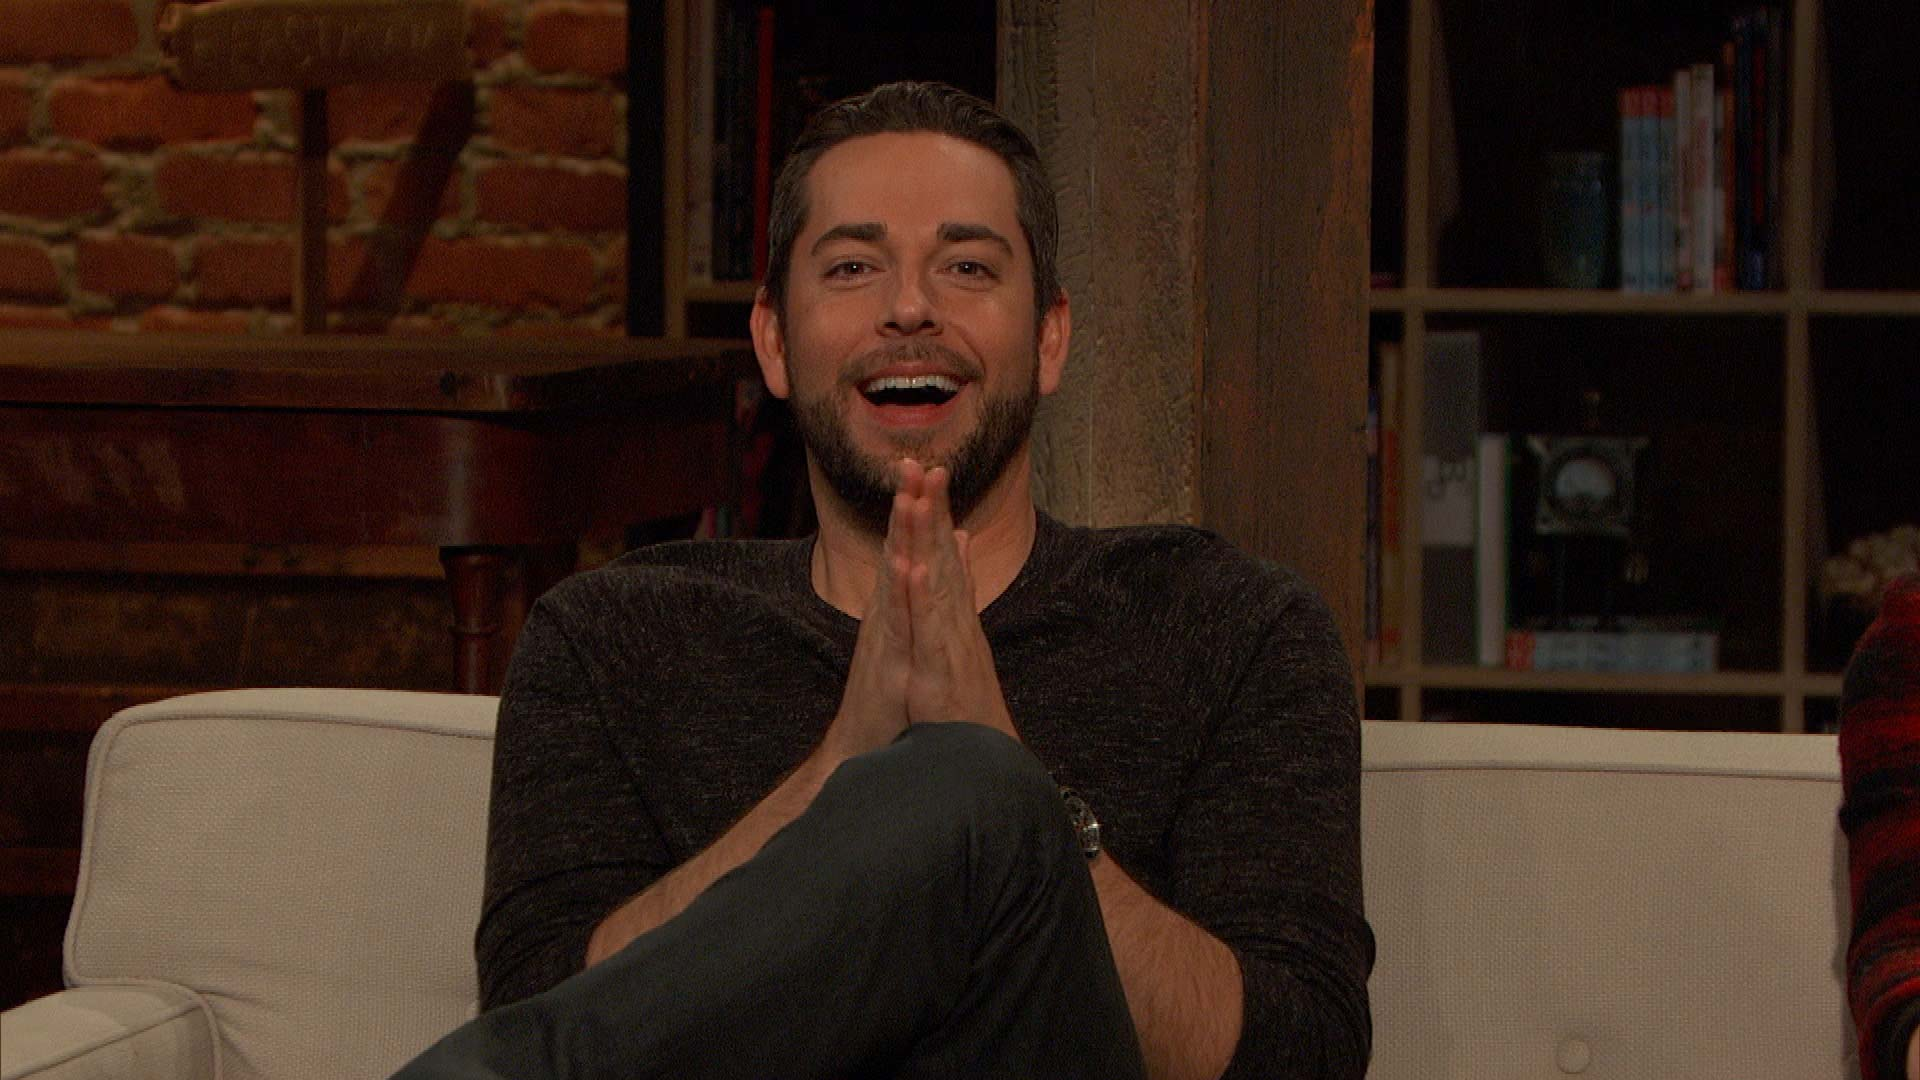 Zachary Levi Predicts What's Next: Episode 605: Talking Dead